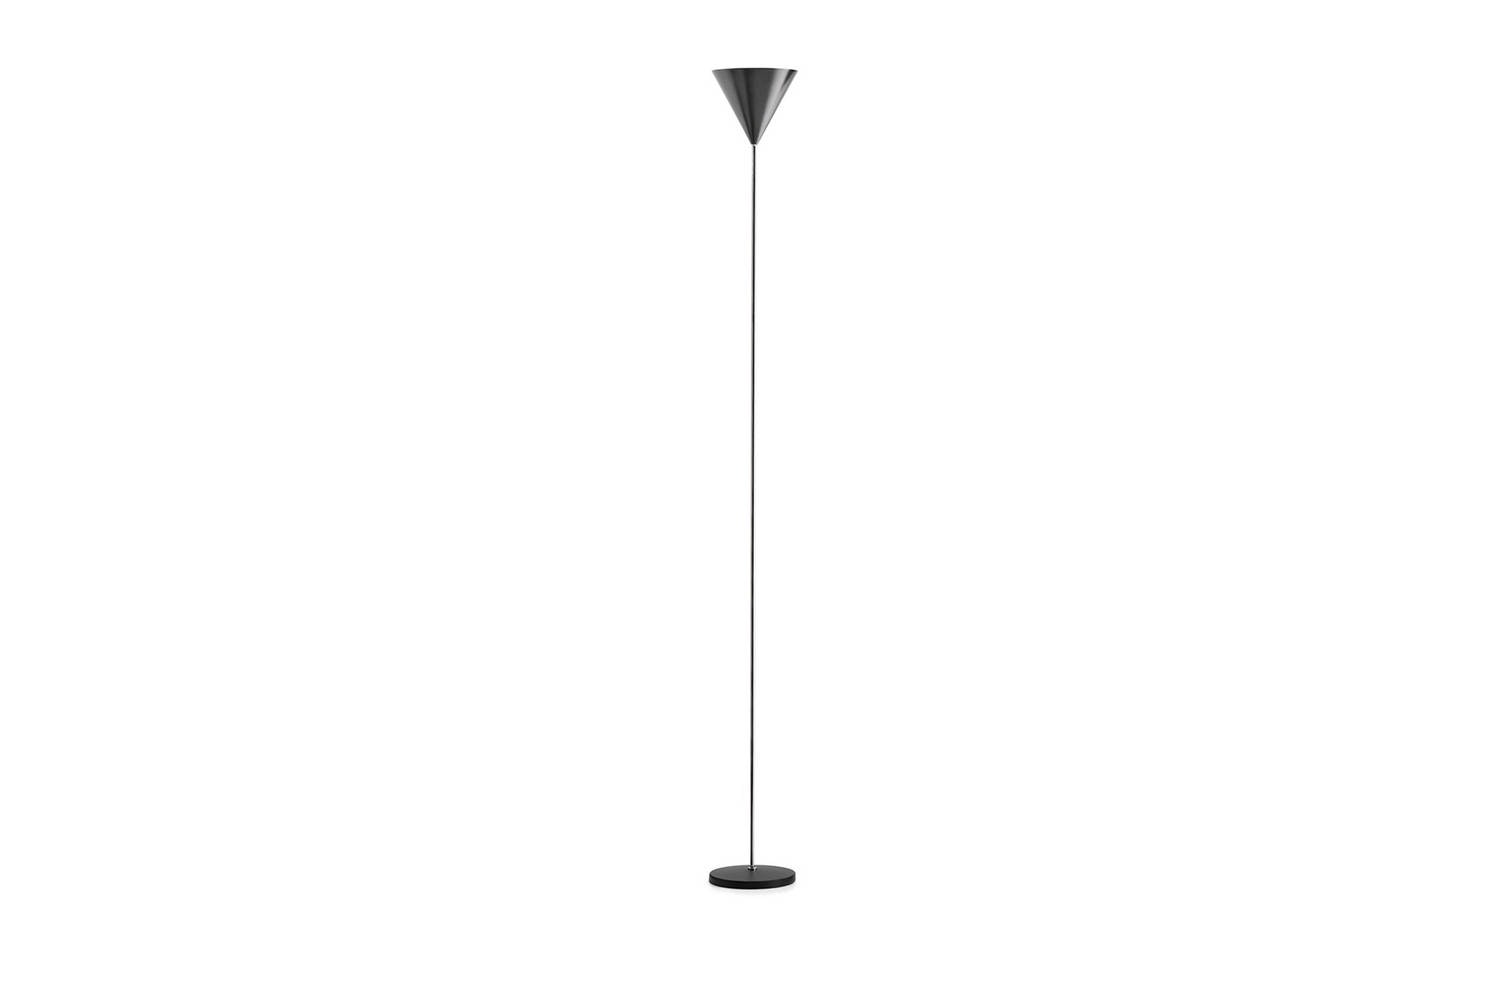 Imbuto Floor Lamp by Luigi Caccia Dominioni for Azucena